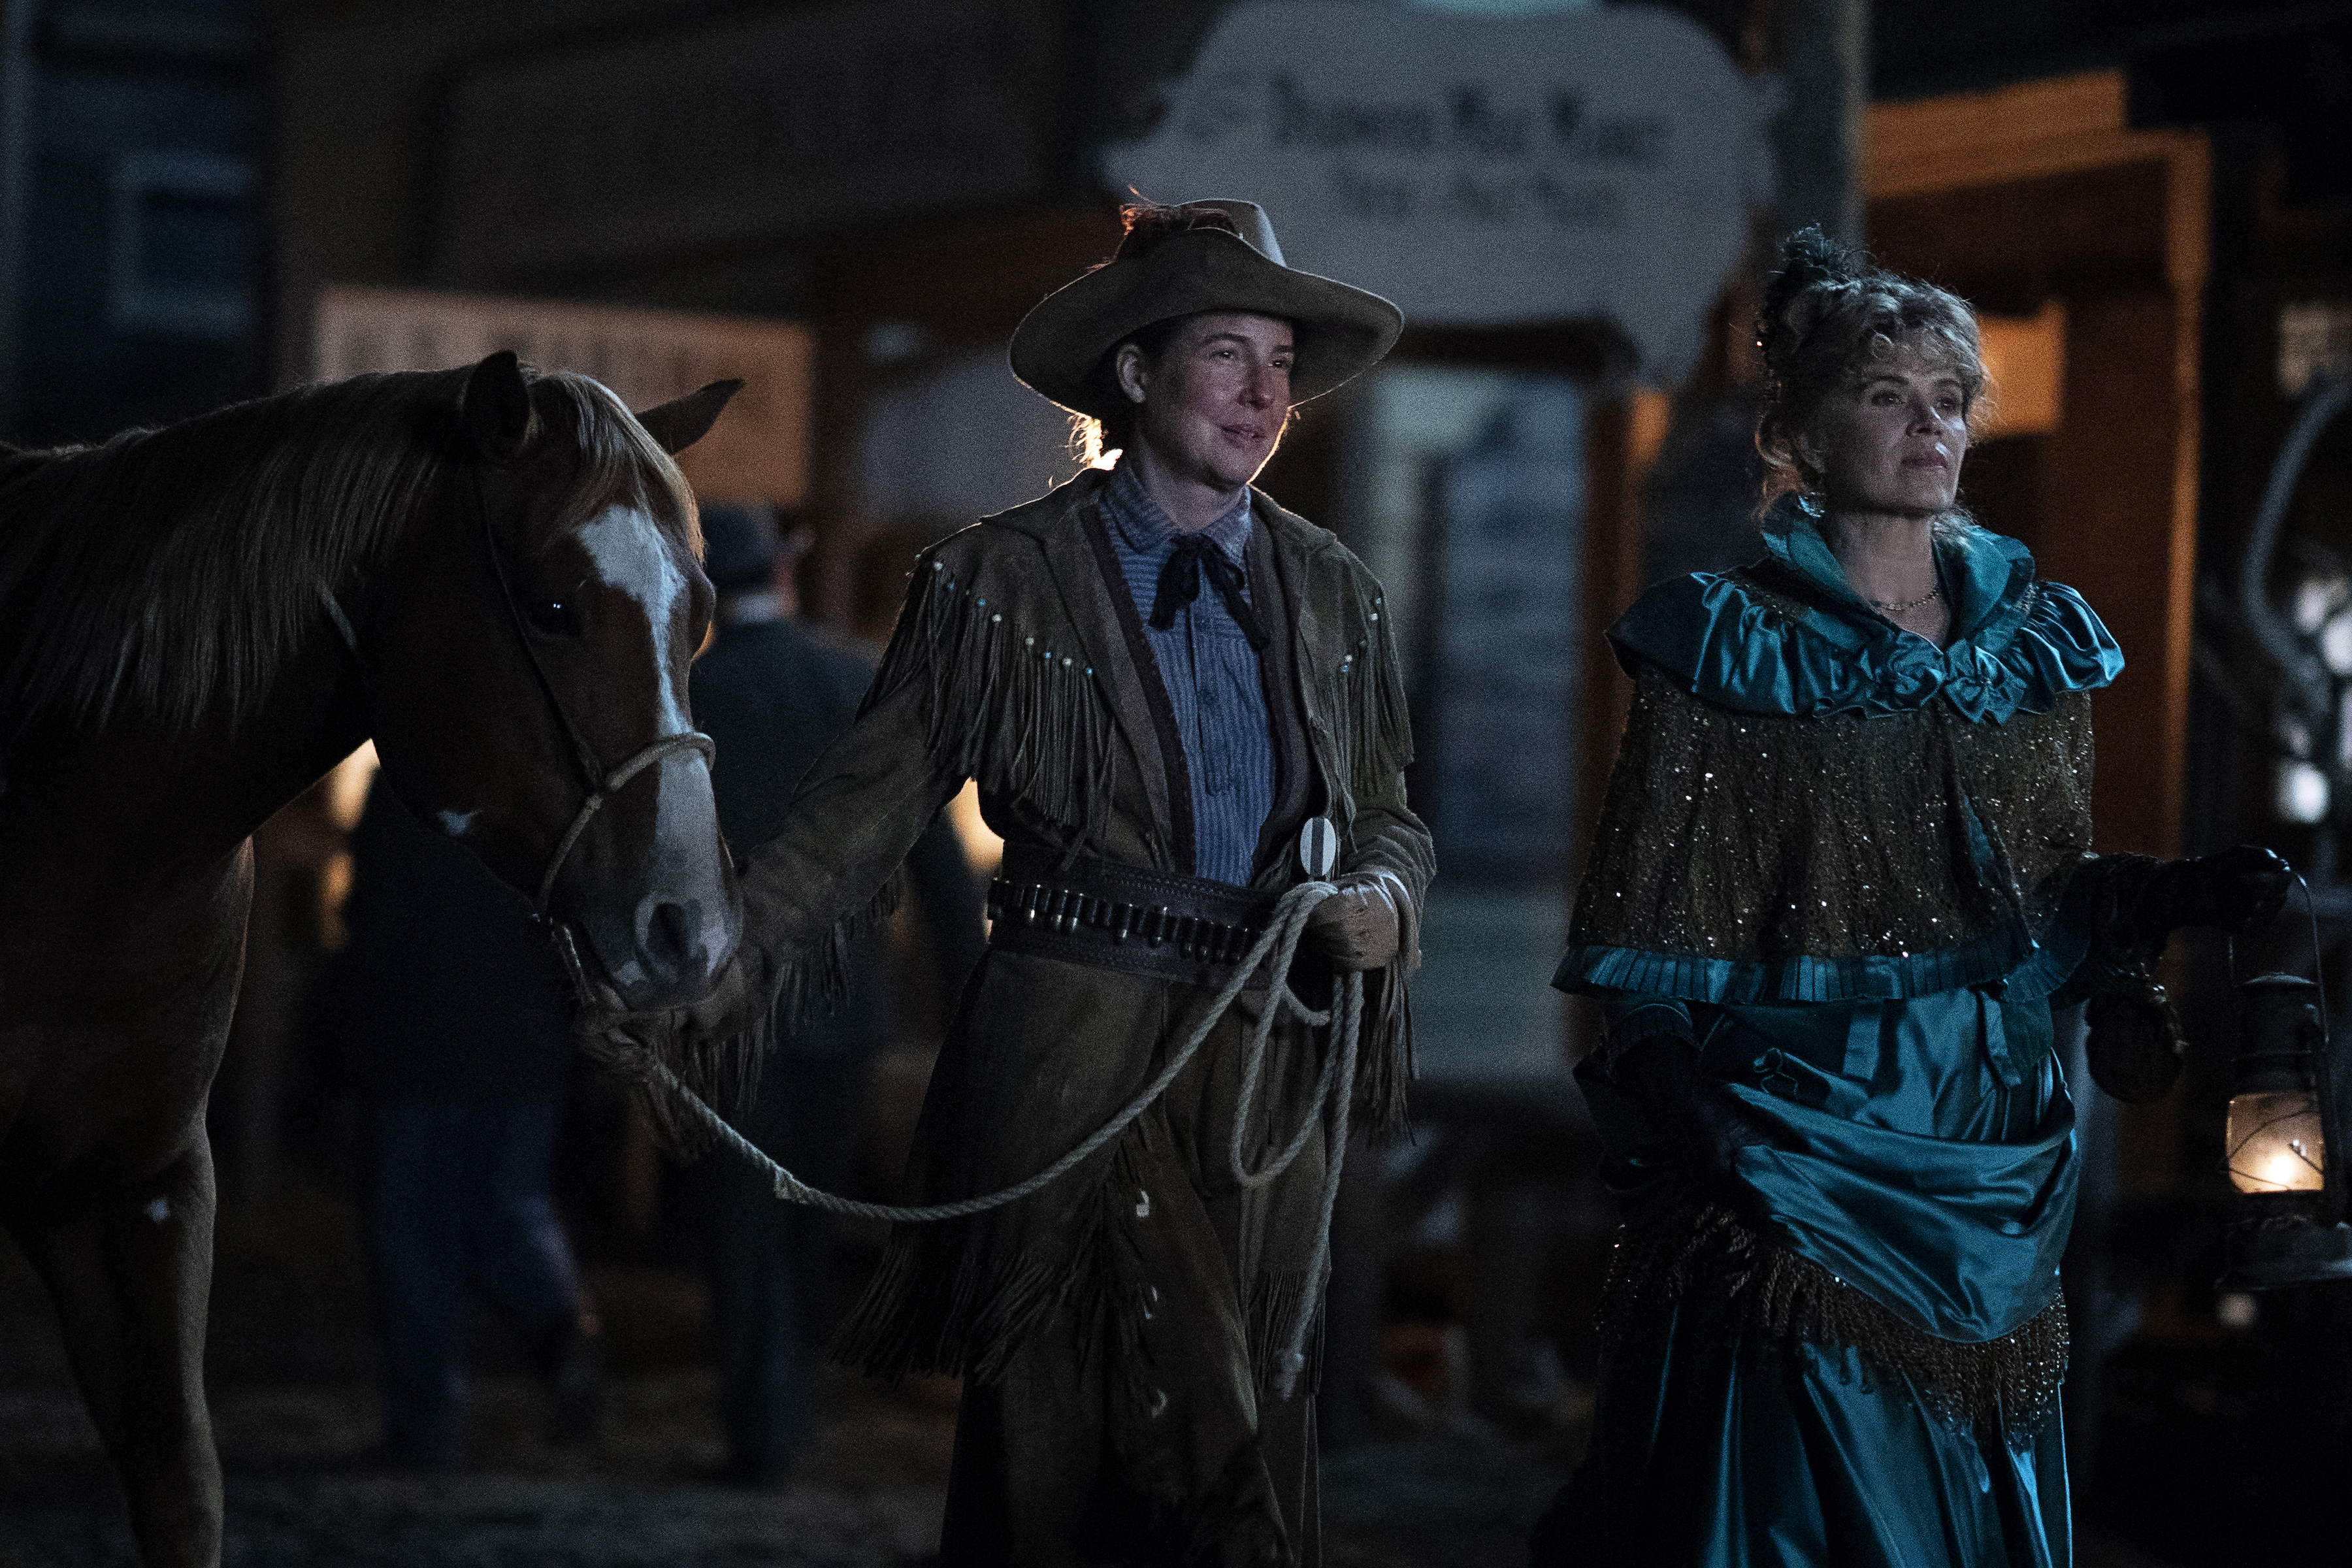 Calamity Jane (Robin Weigert) and Joanie Stubbs (Kim Dickens) in the Deadwood movie.